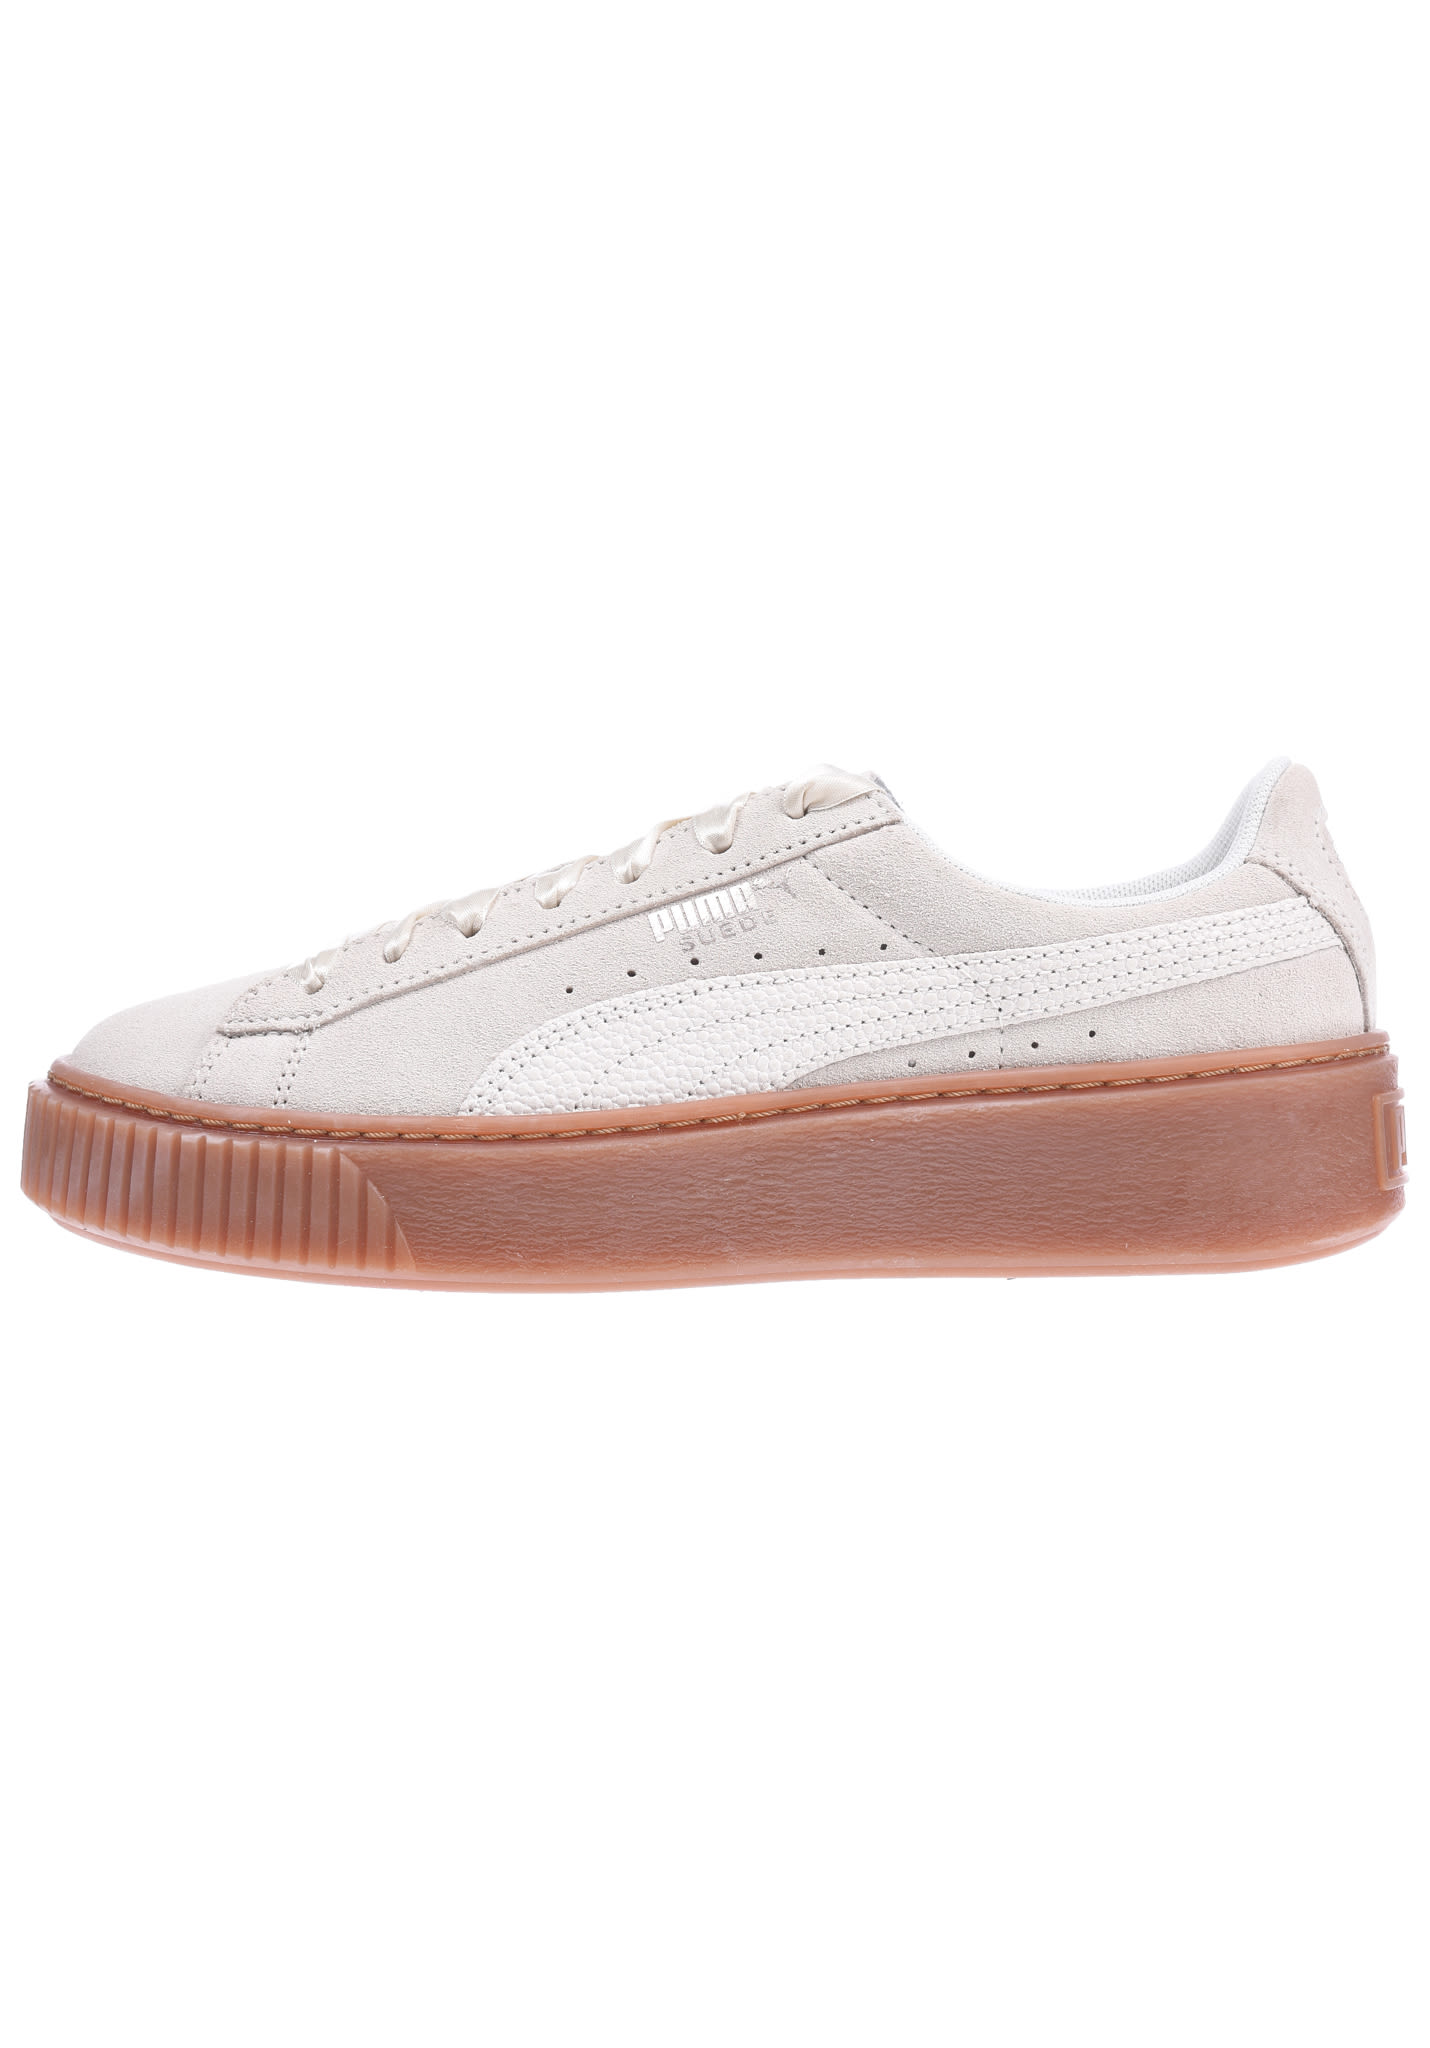 differently da7b4 2e241 Puma Suede Platform Bubble - Sneakers for Women - Beige